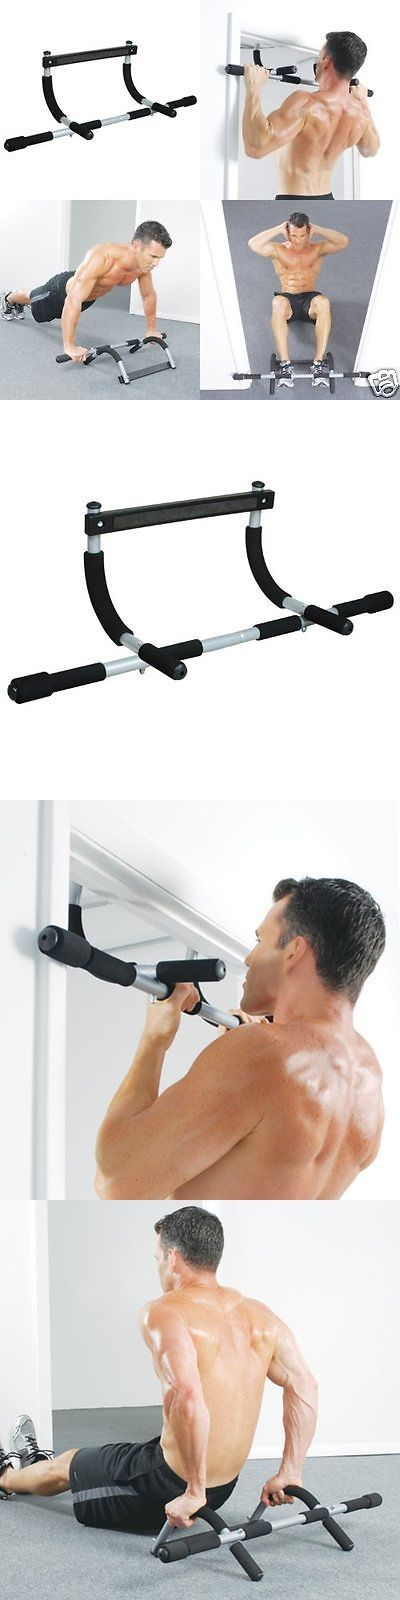 Pull Up Bars 179816: Iron Gym Total Upper Body Workout Bar Door Sport Pull Up Chin Fitness Training -> BUY IT NOW ONLY: $33.35 on eBay!